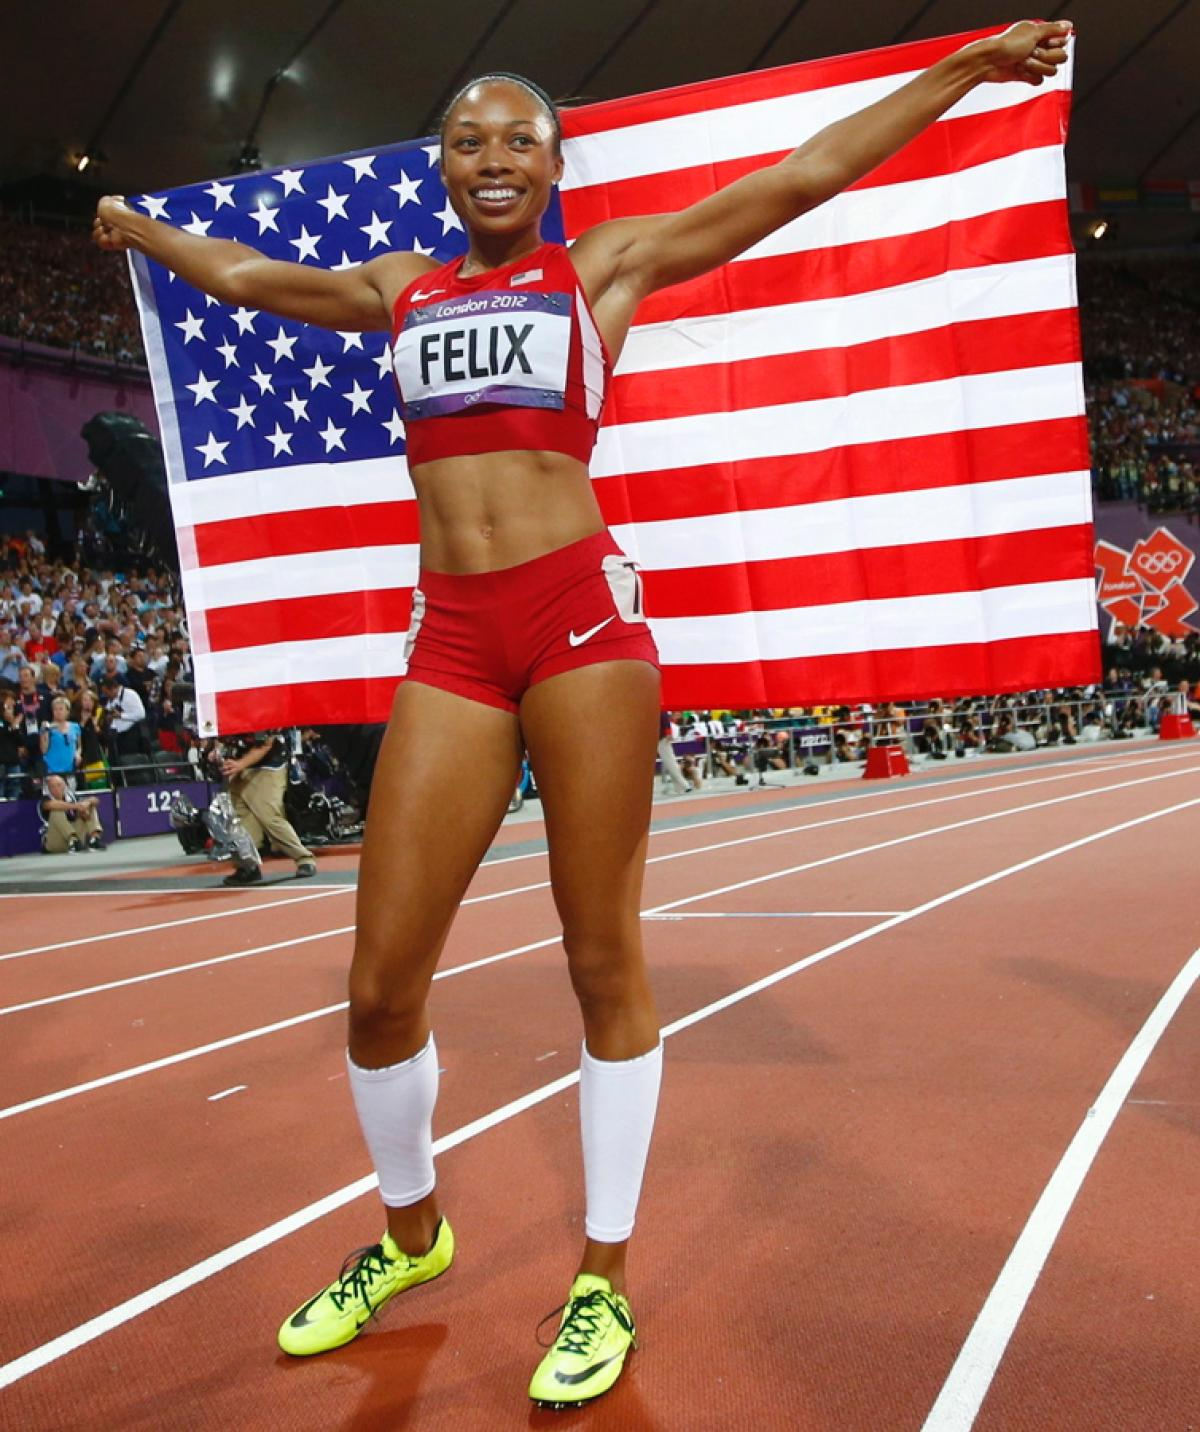 Allyson Felix at the London Olympic Games in 2012